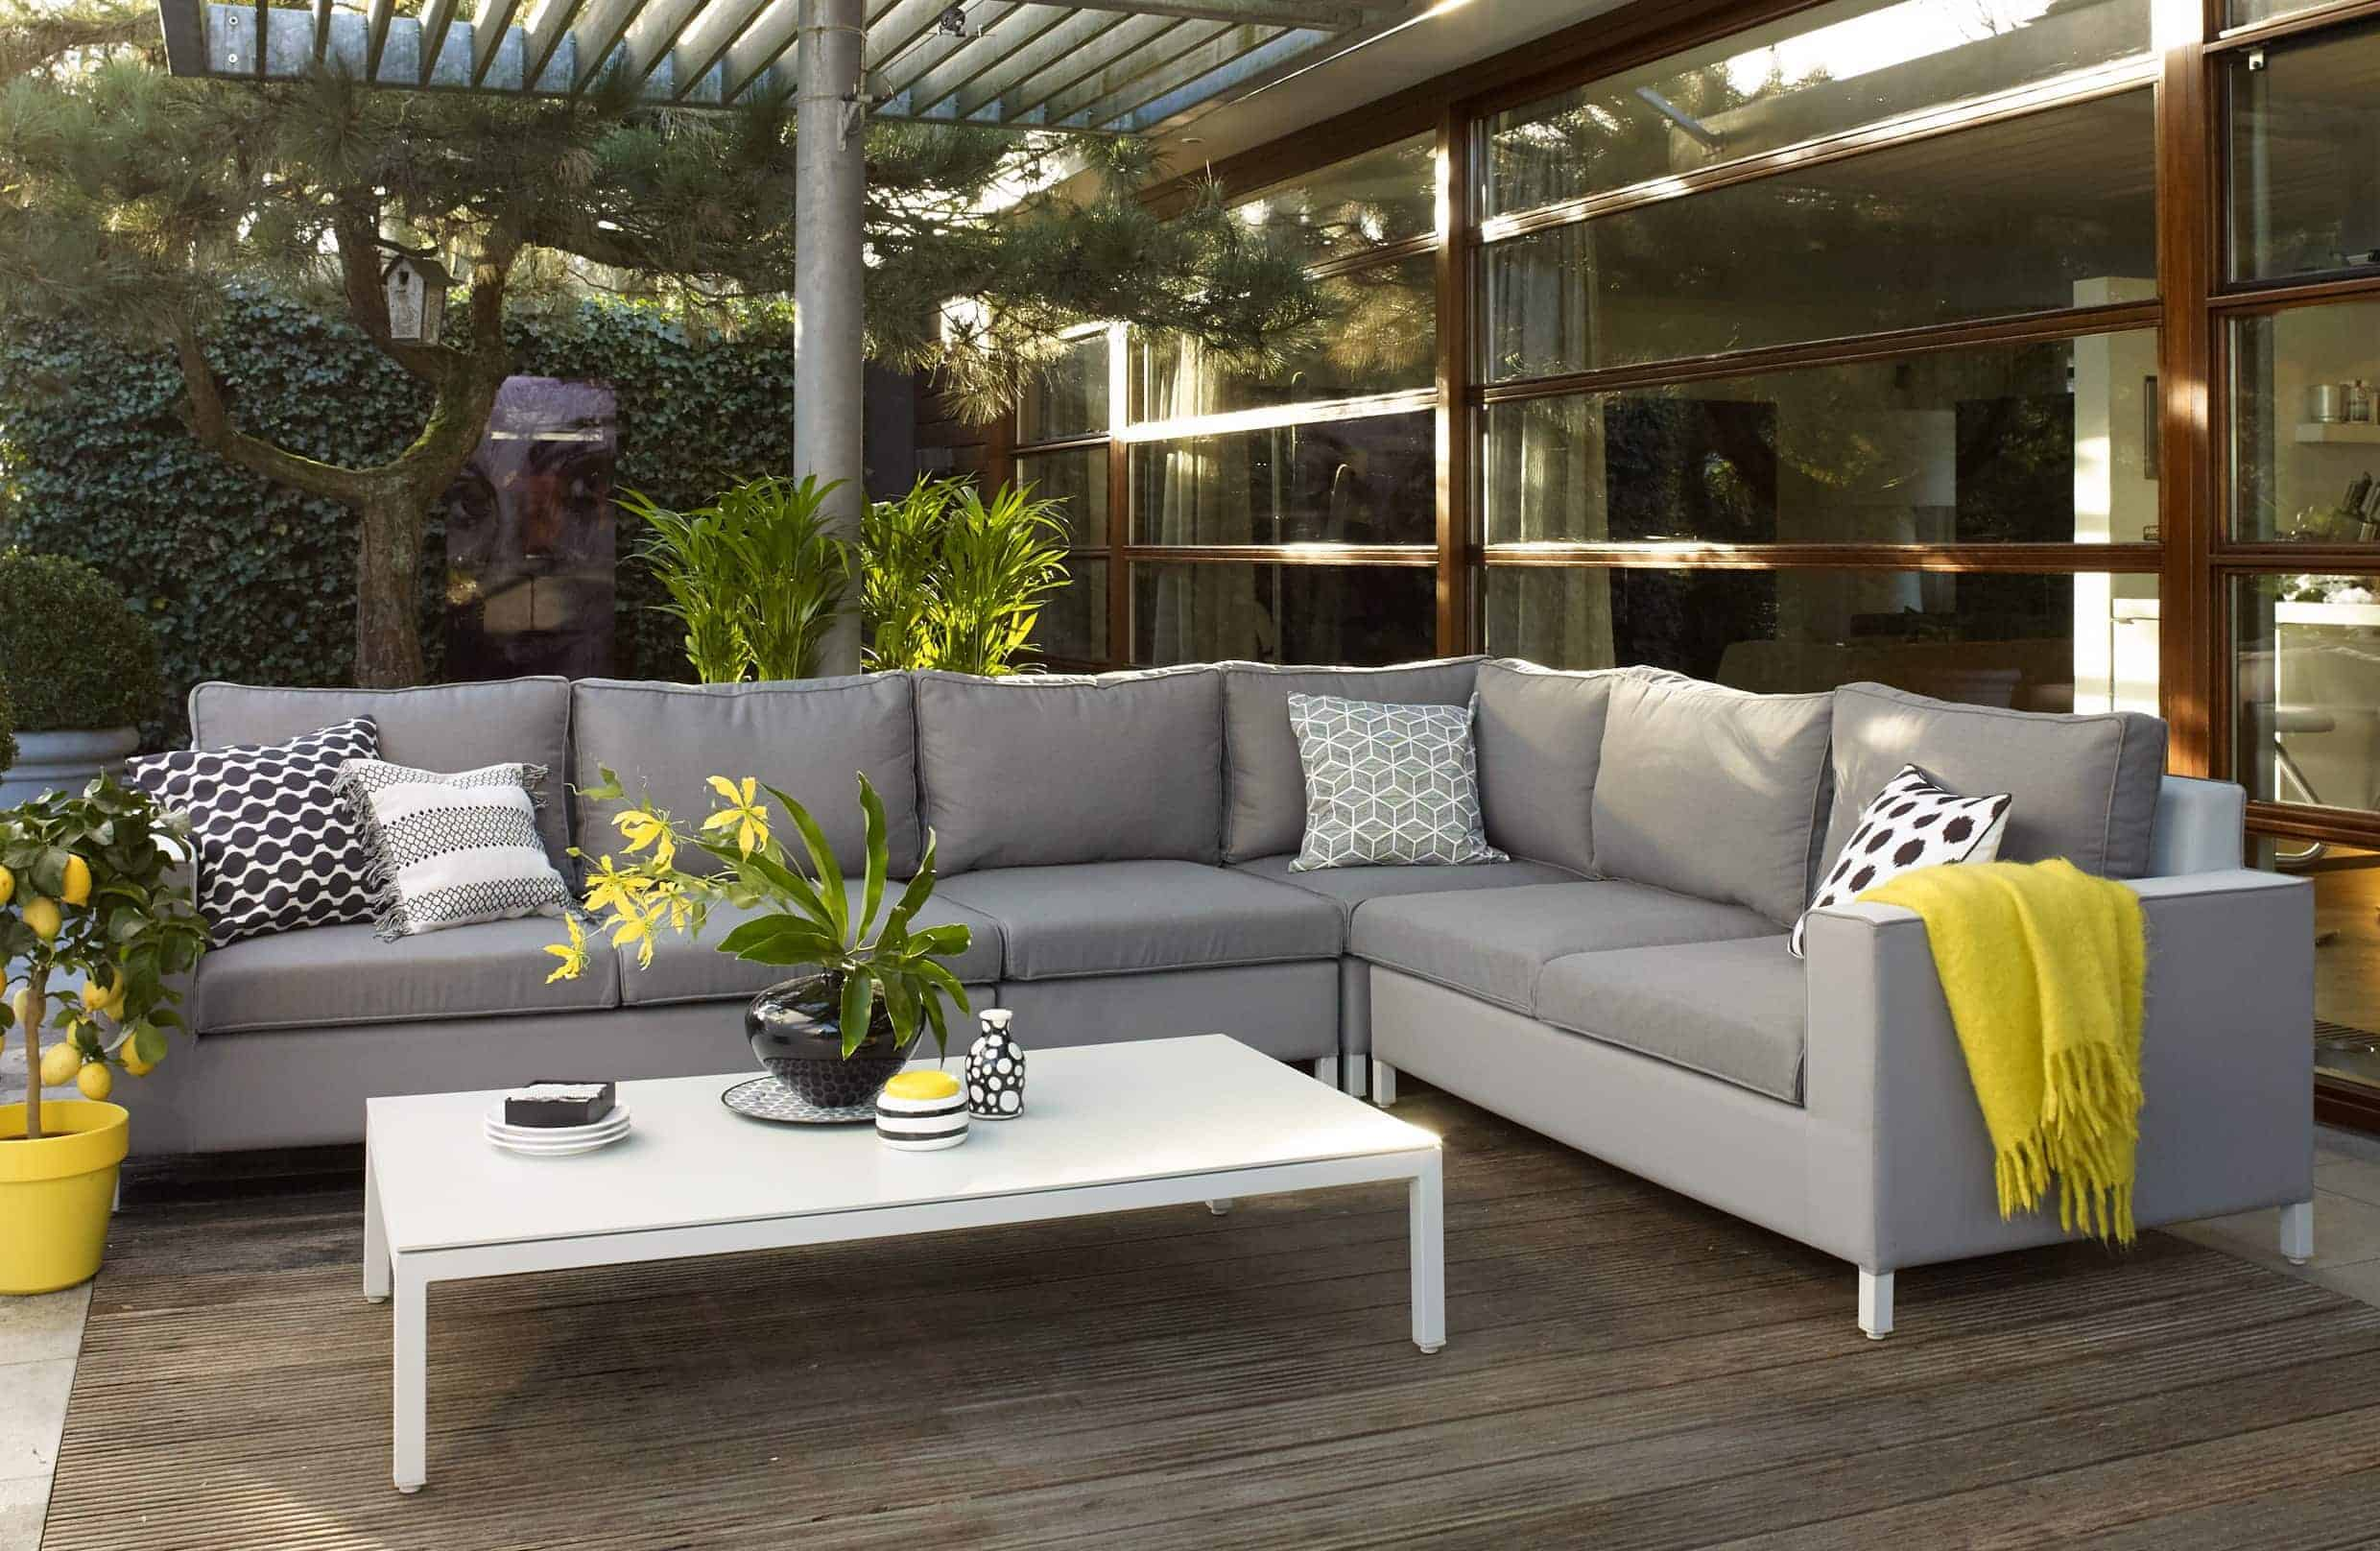 lightbox - Garden Furniture Dublin